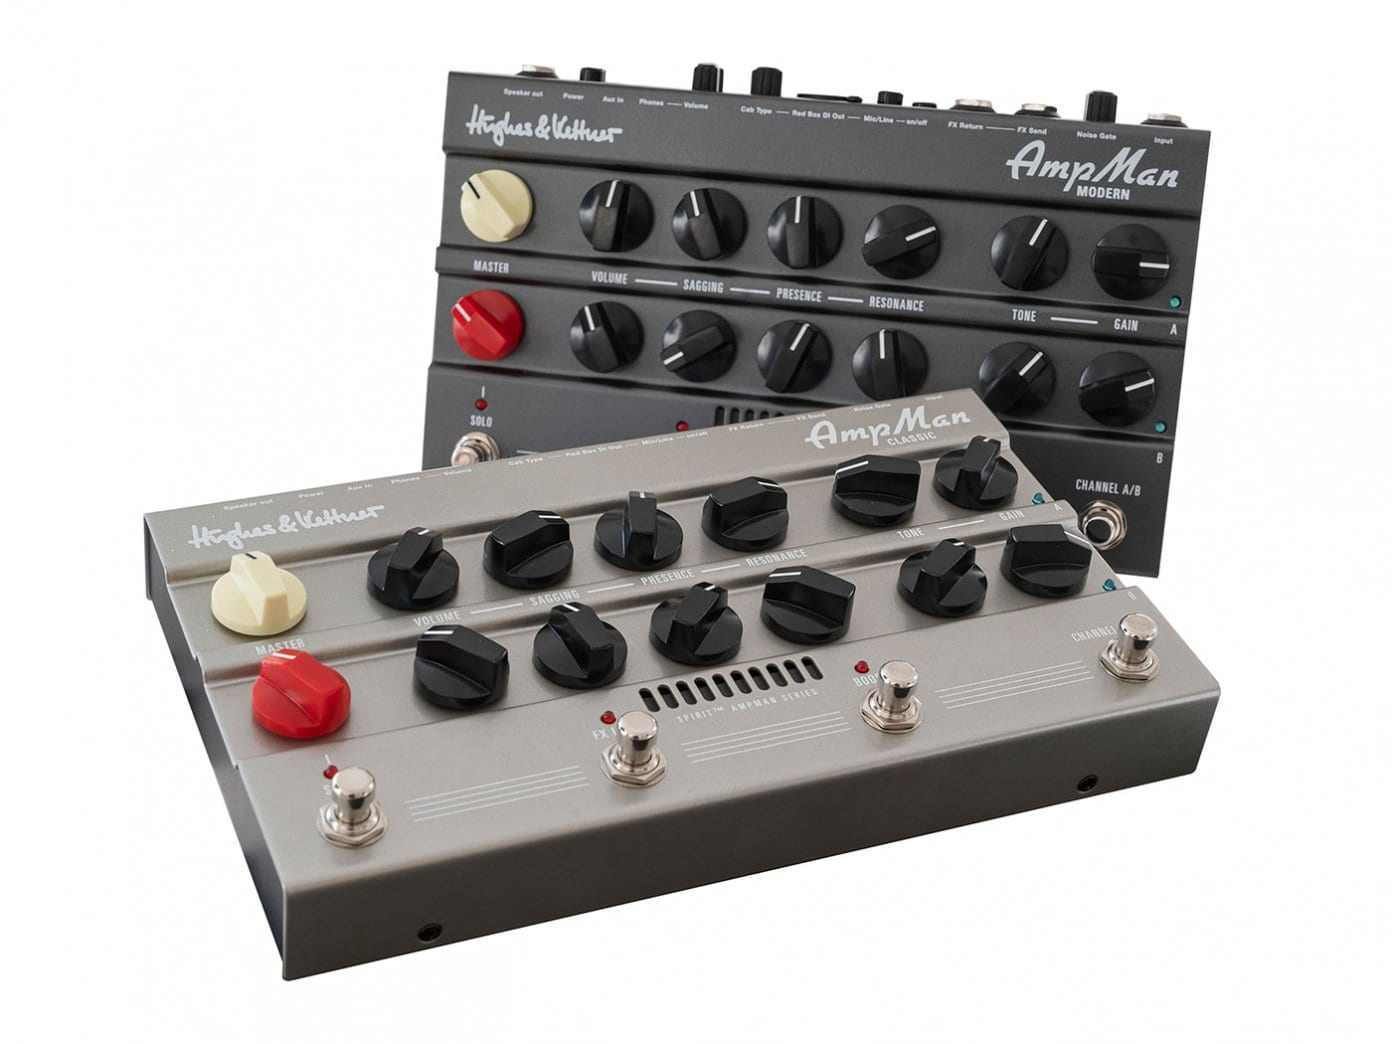 Hughes and Kettner AmpMan Classic and Modern